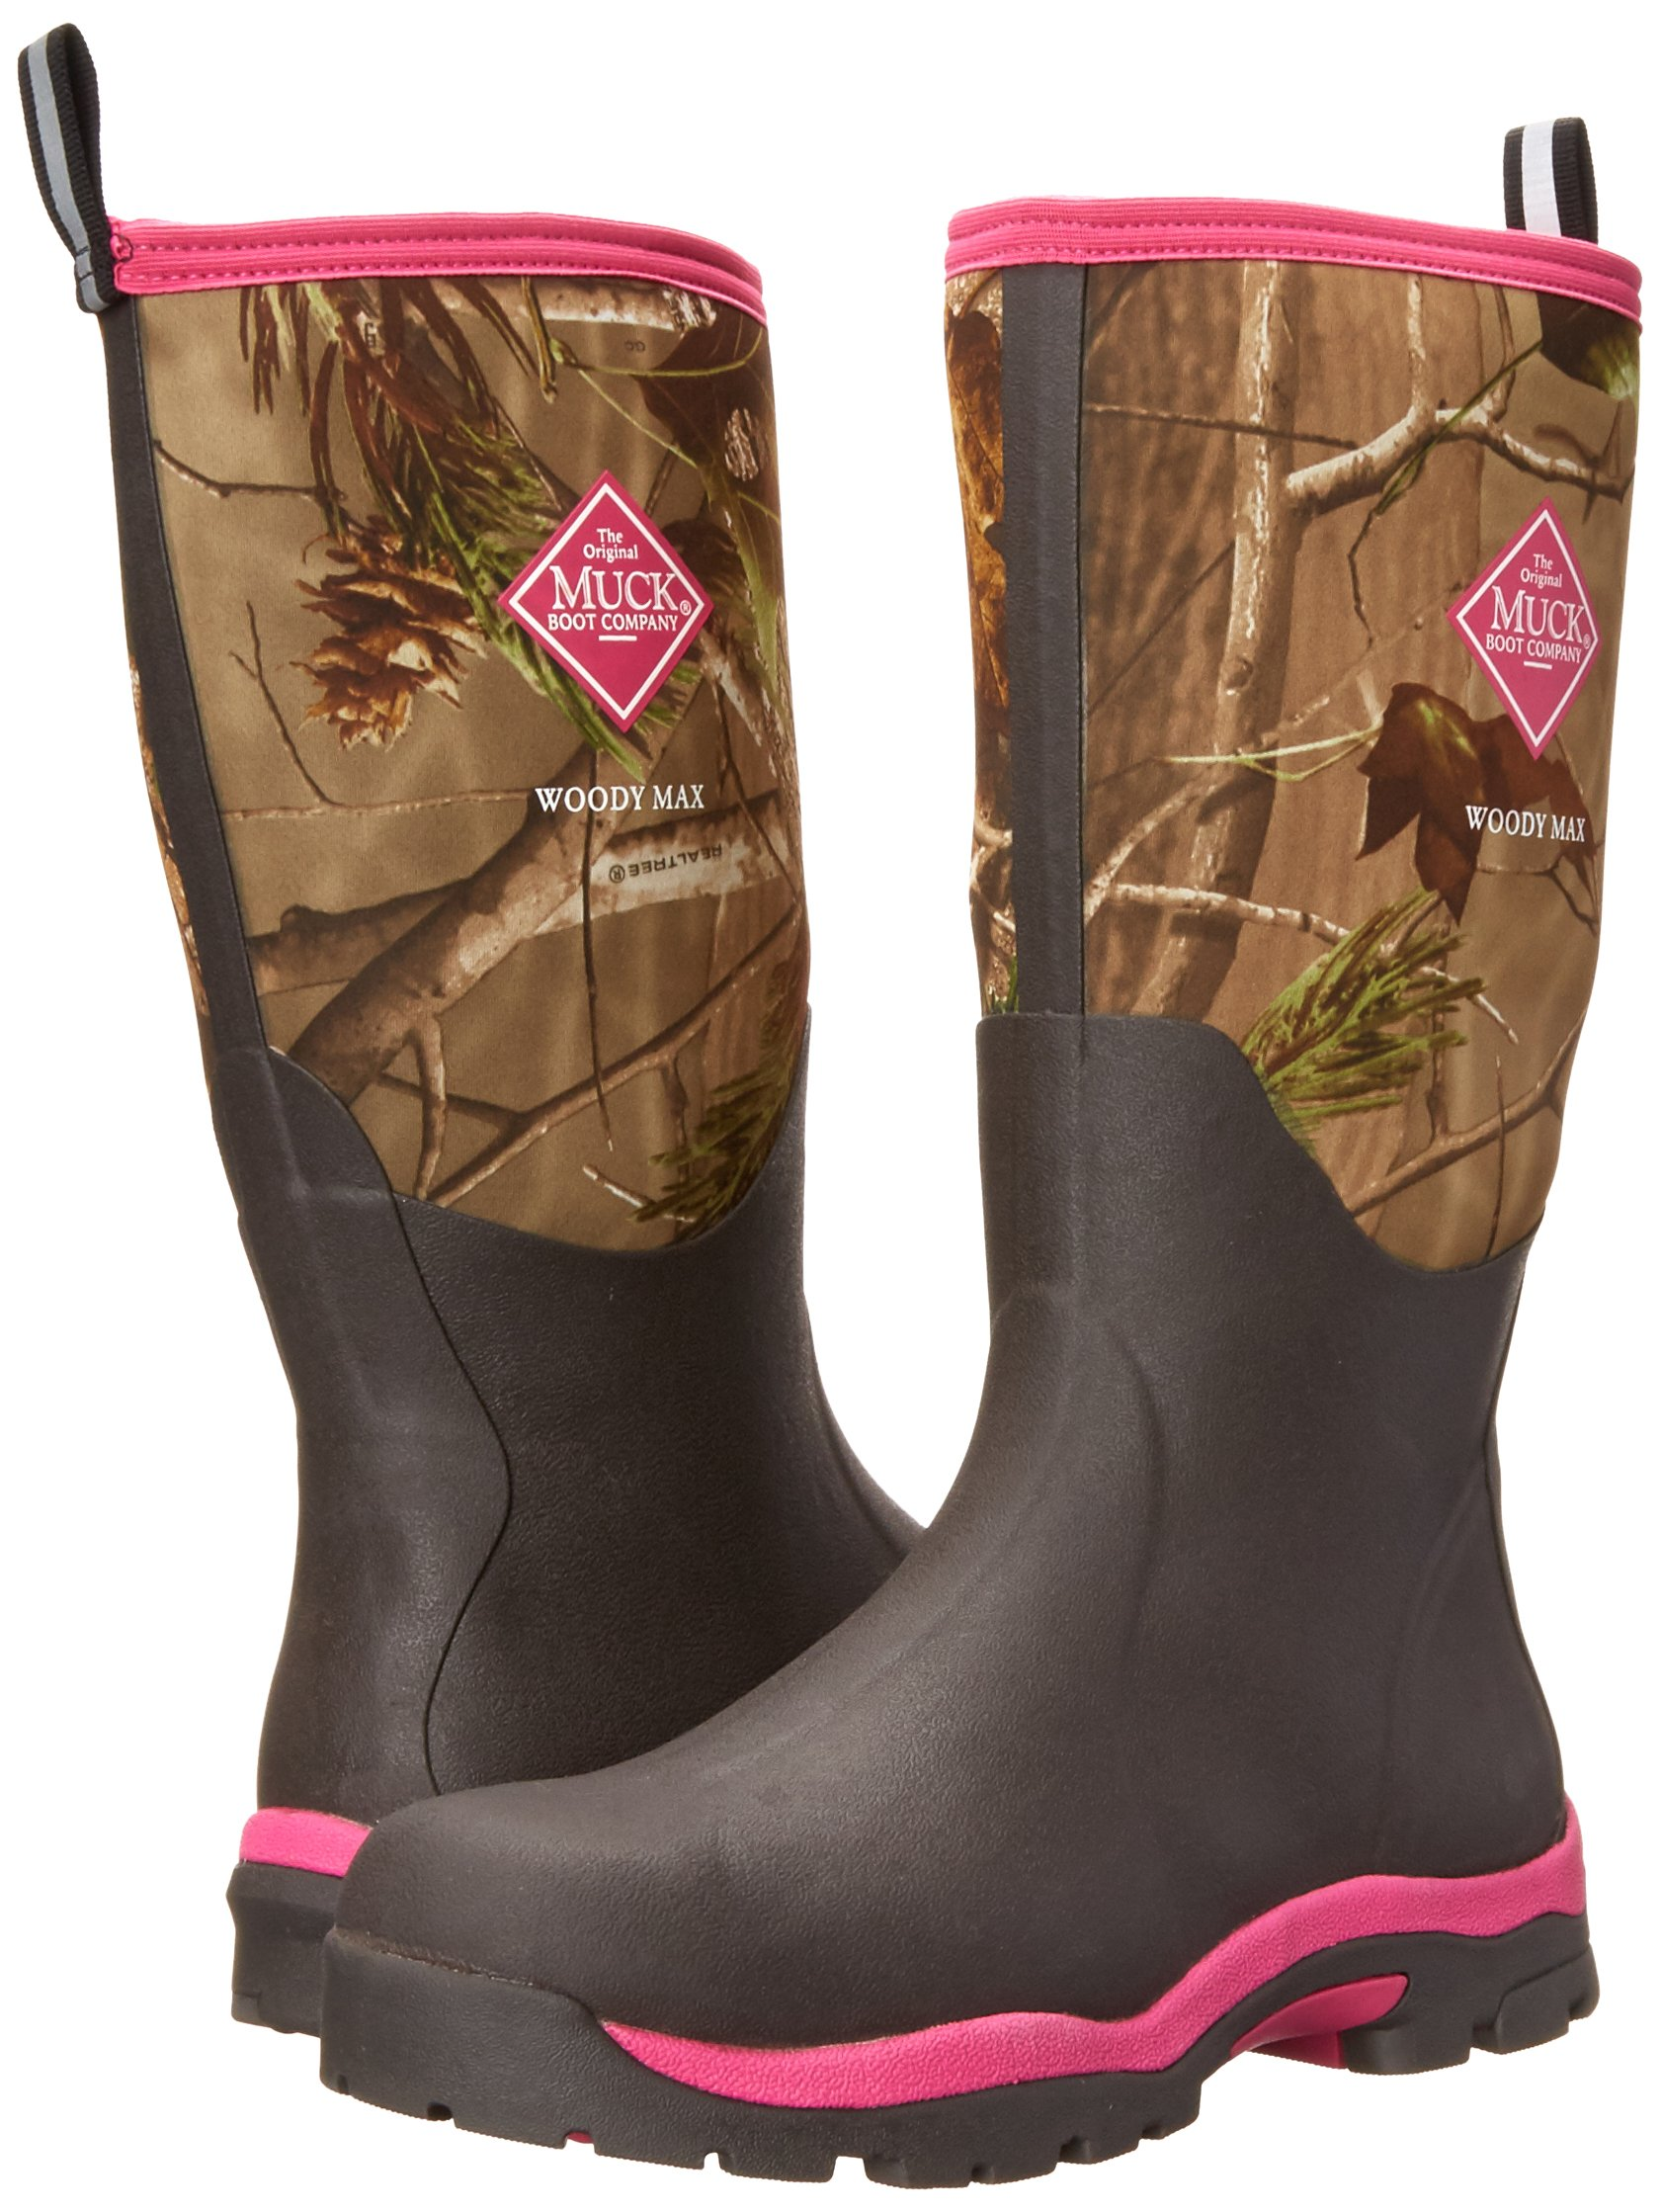 Muck Boot Womens Woody Pk Hunting Shoes, Bark/Realtree/Hot Pink, 8 US/8-8.5 M US by Muck Boot (Image #6)